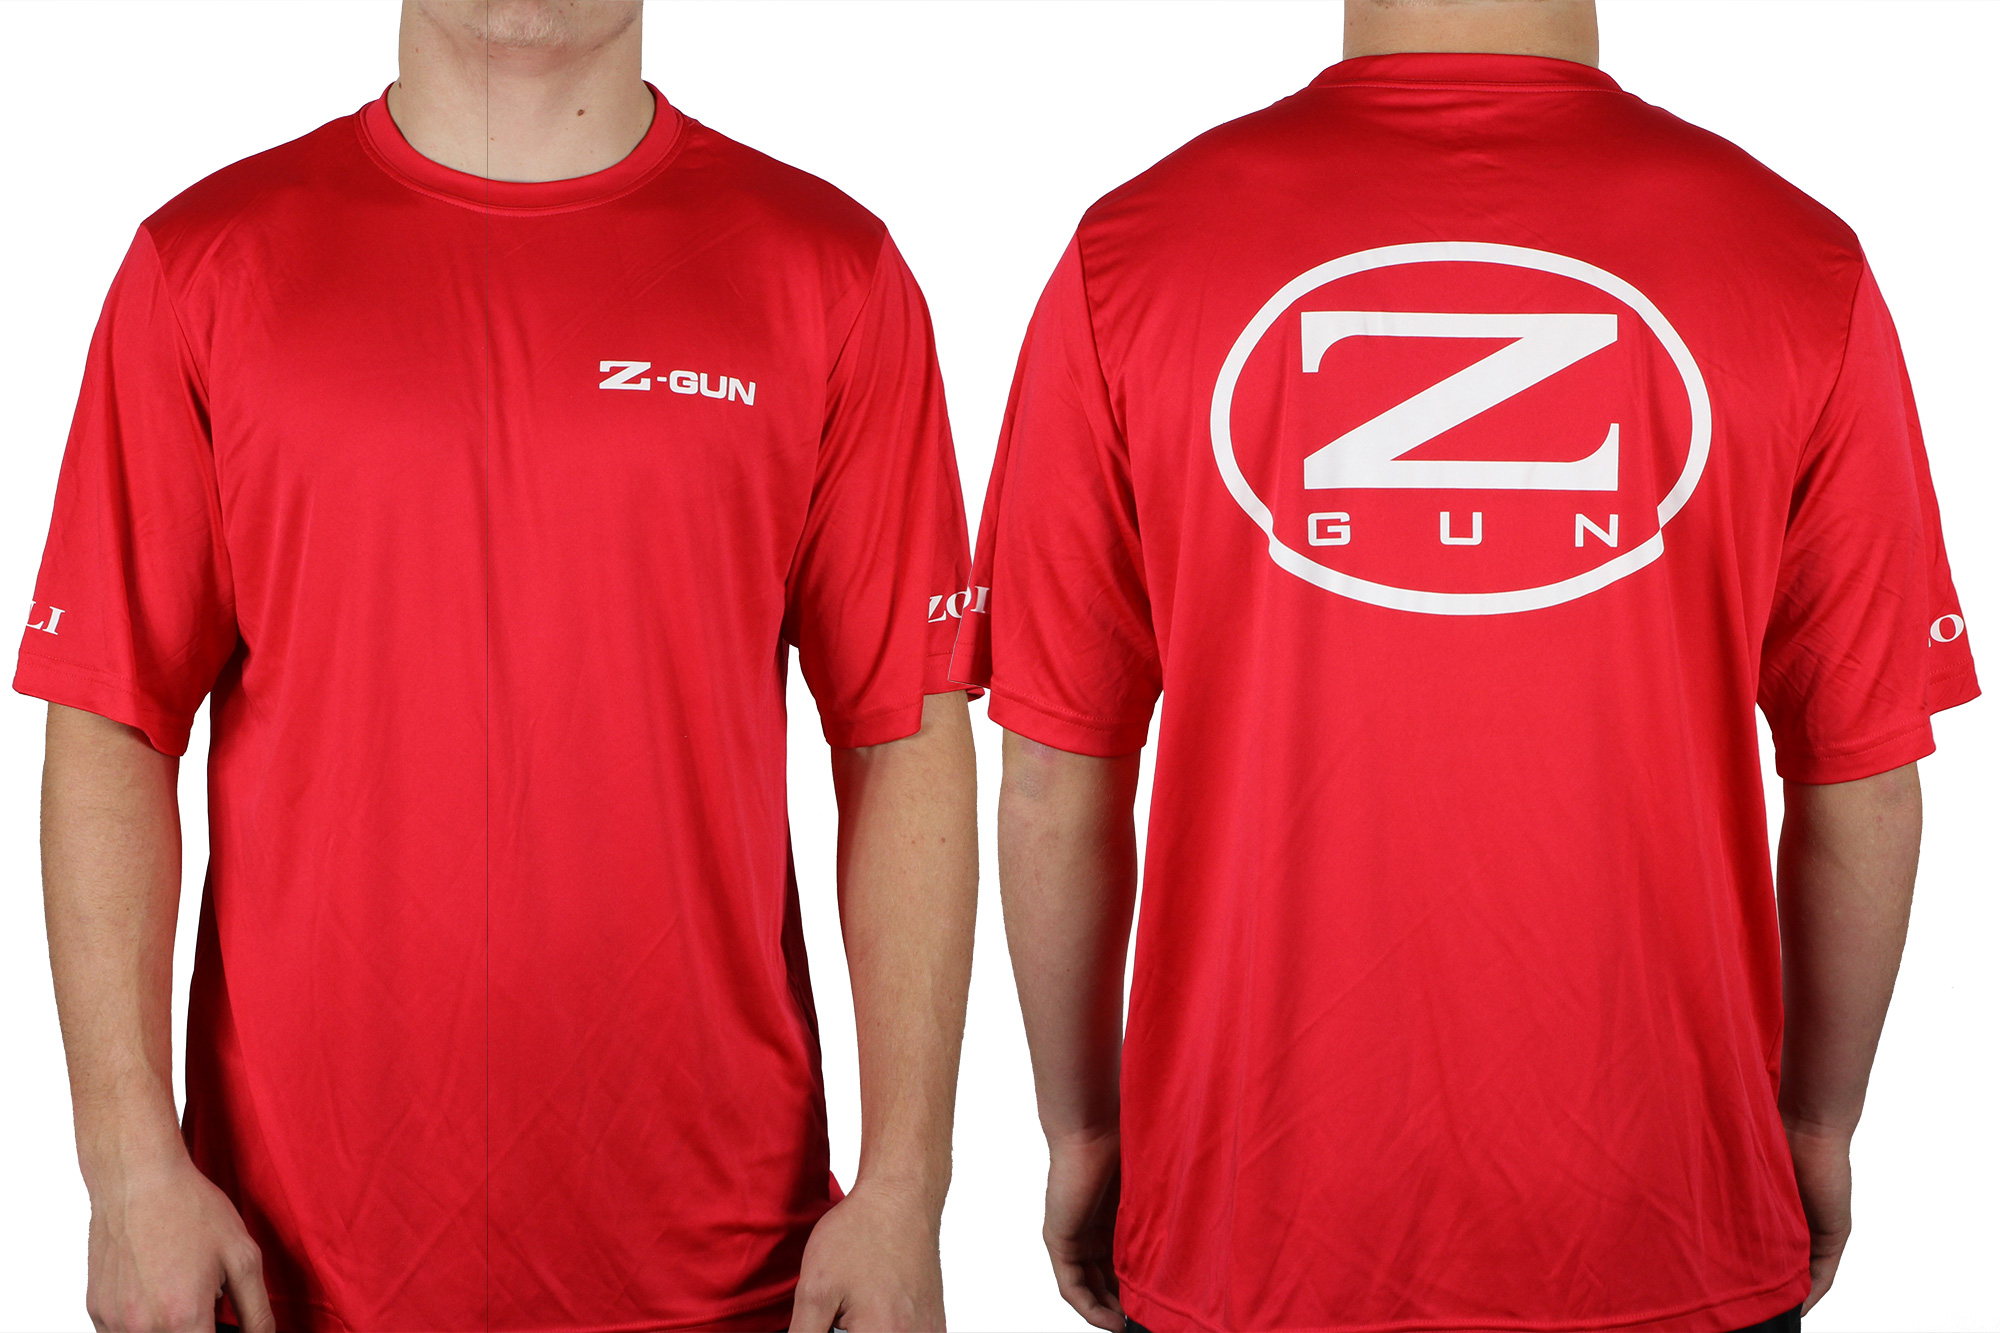 Z-GUN Sport Shirt ( Red )